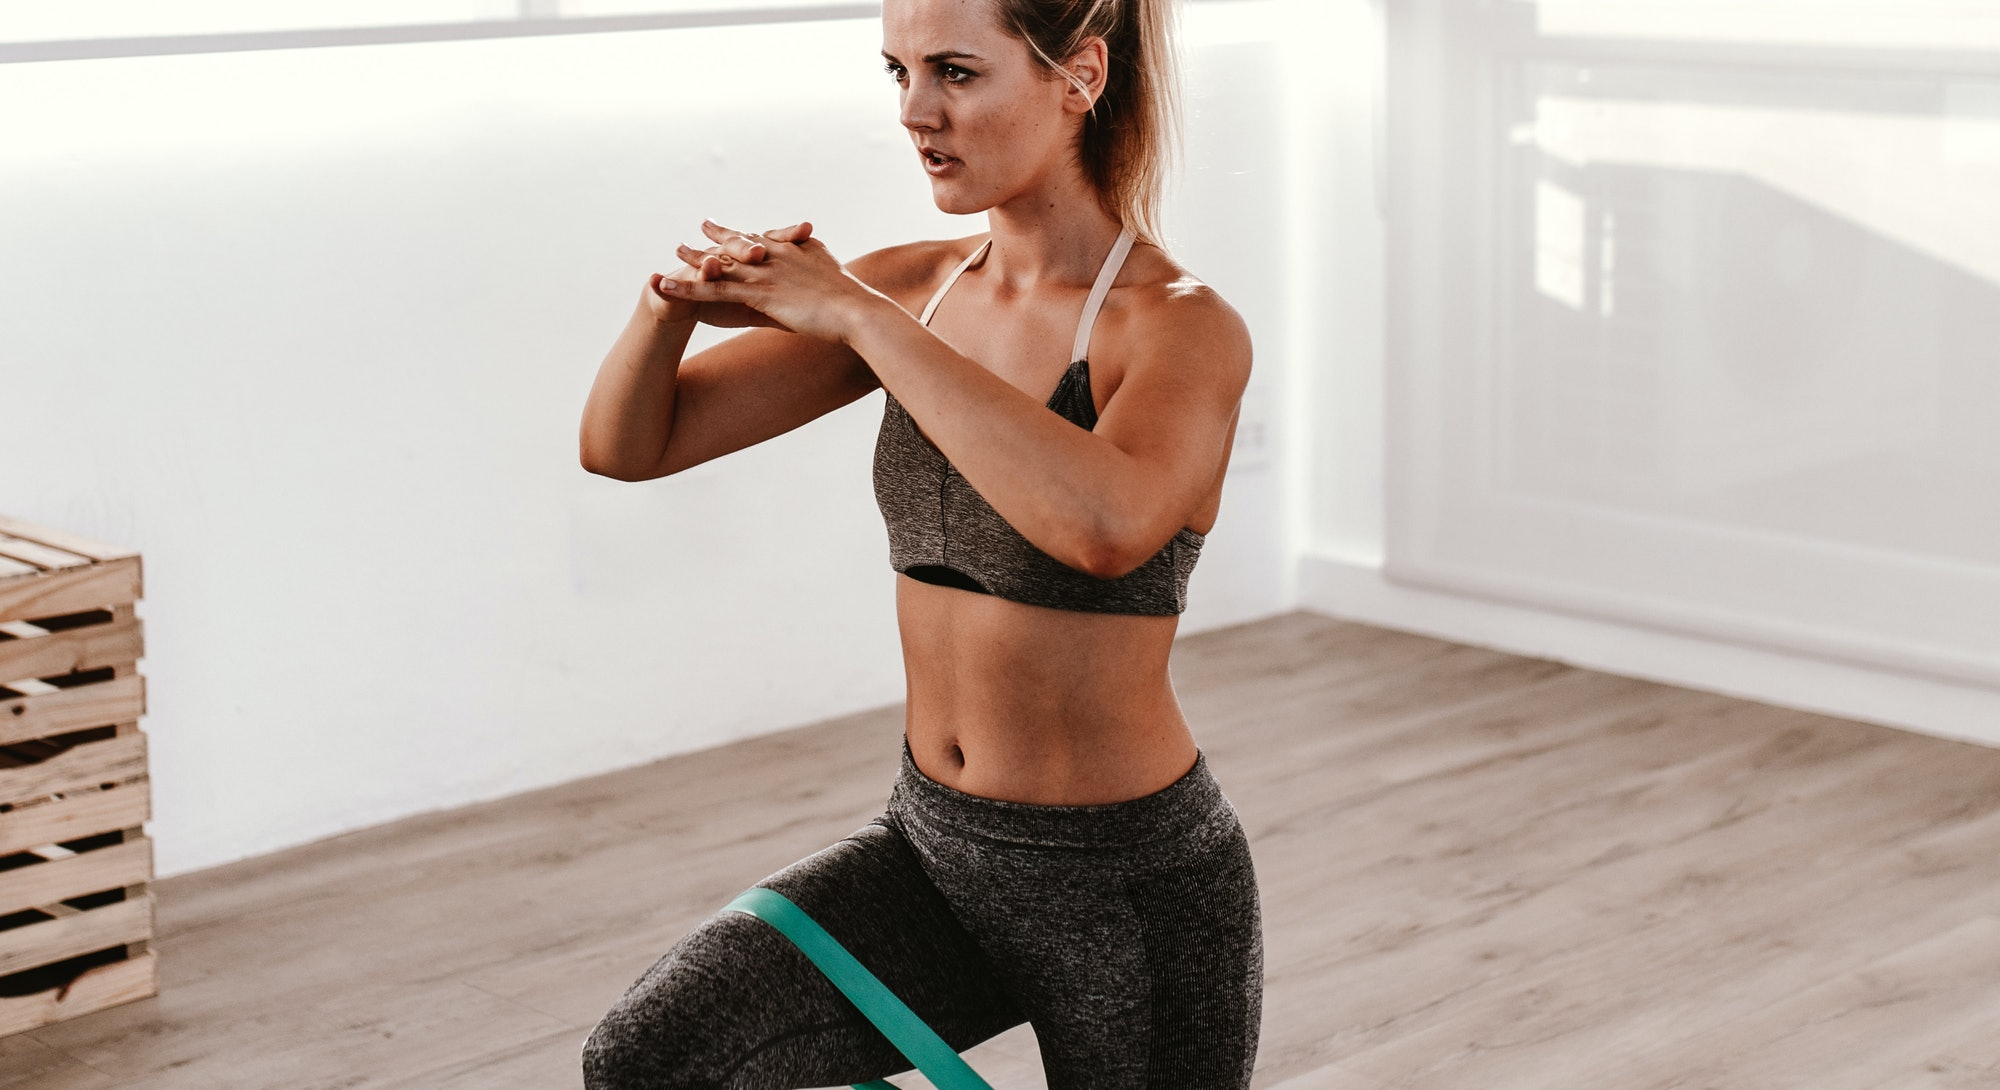 Trainers share their favorite resistance band exercises for strengthening the glutes.